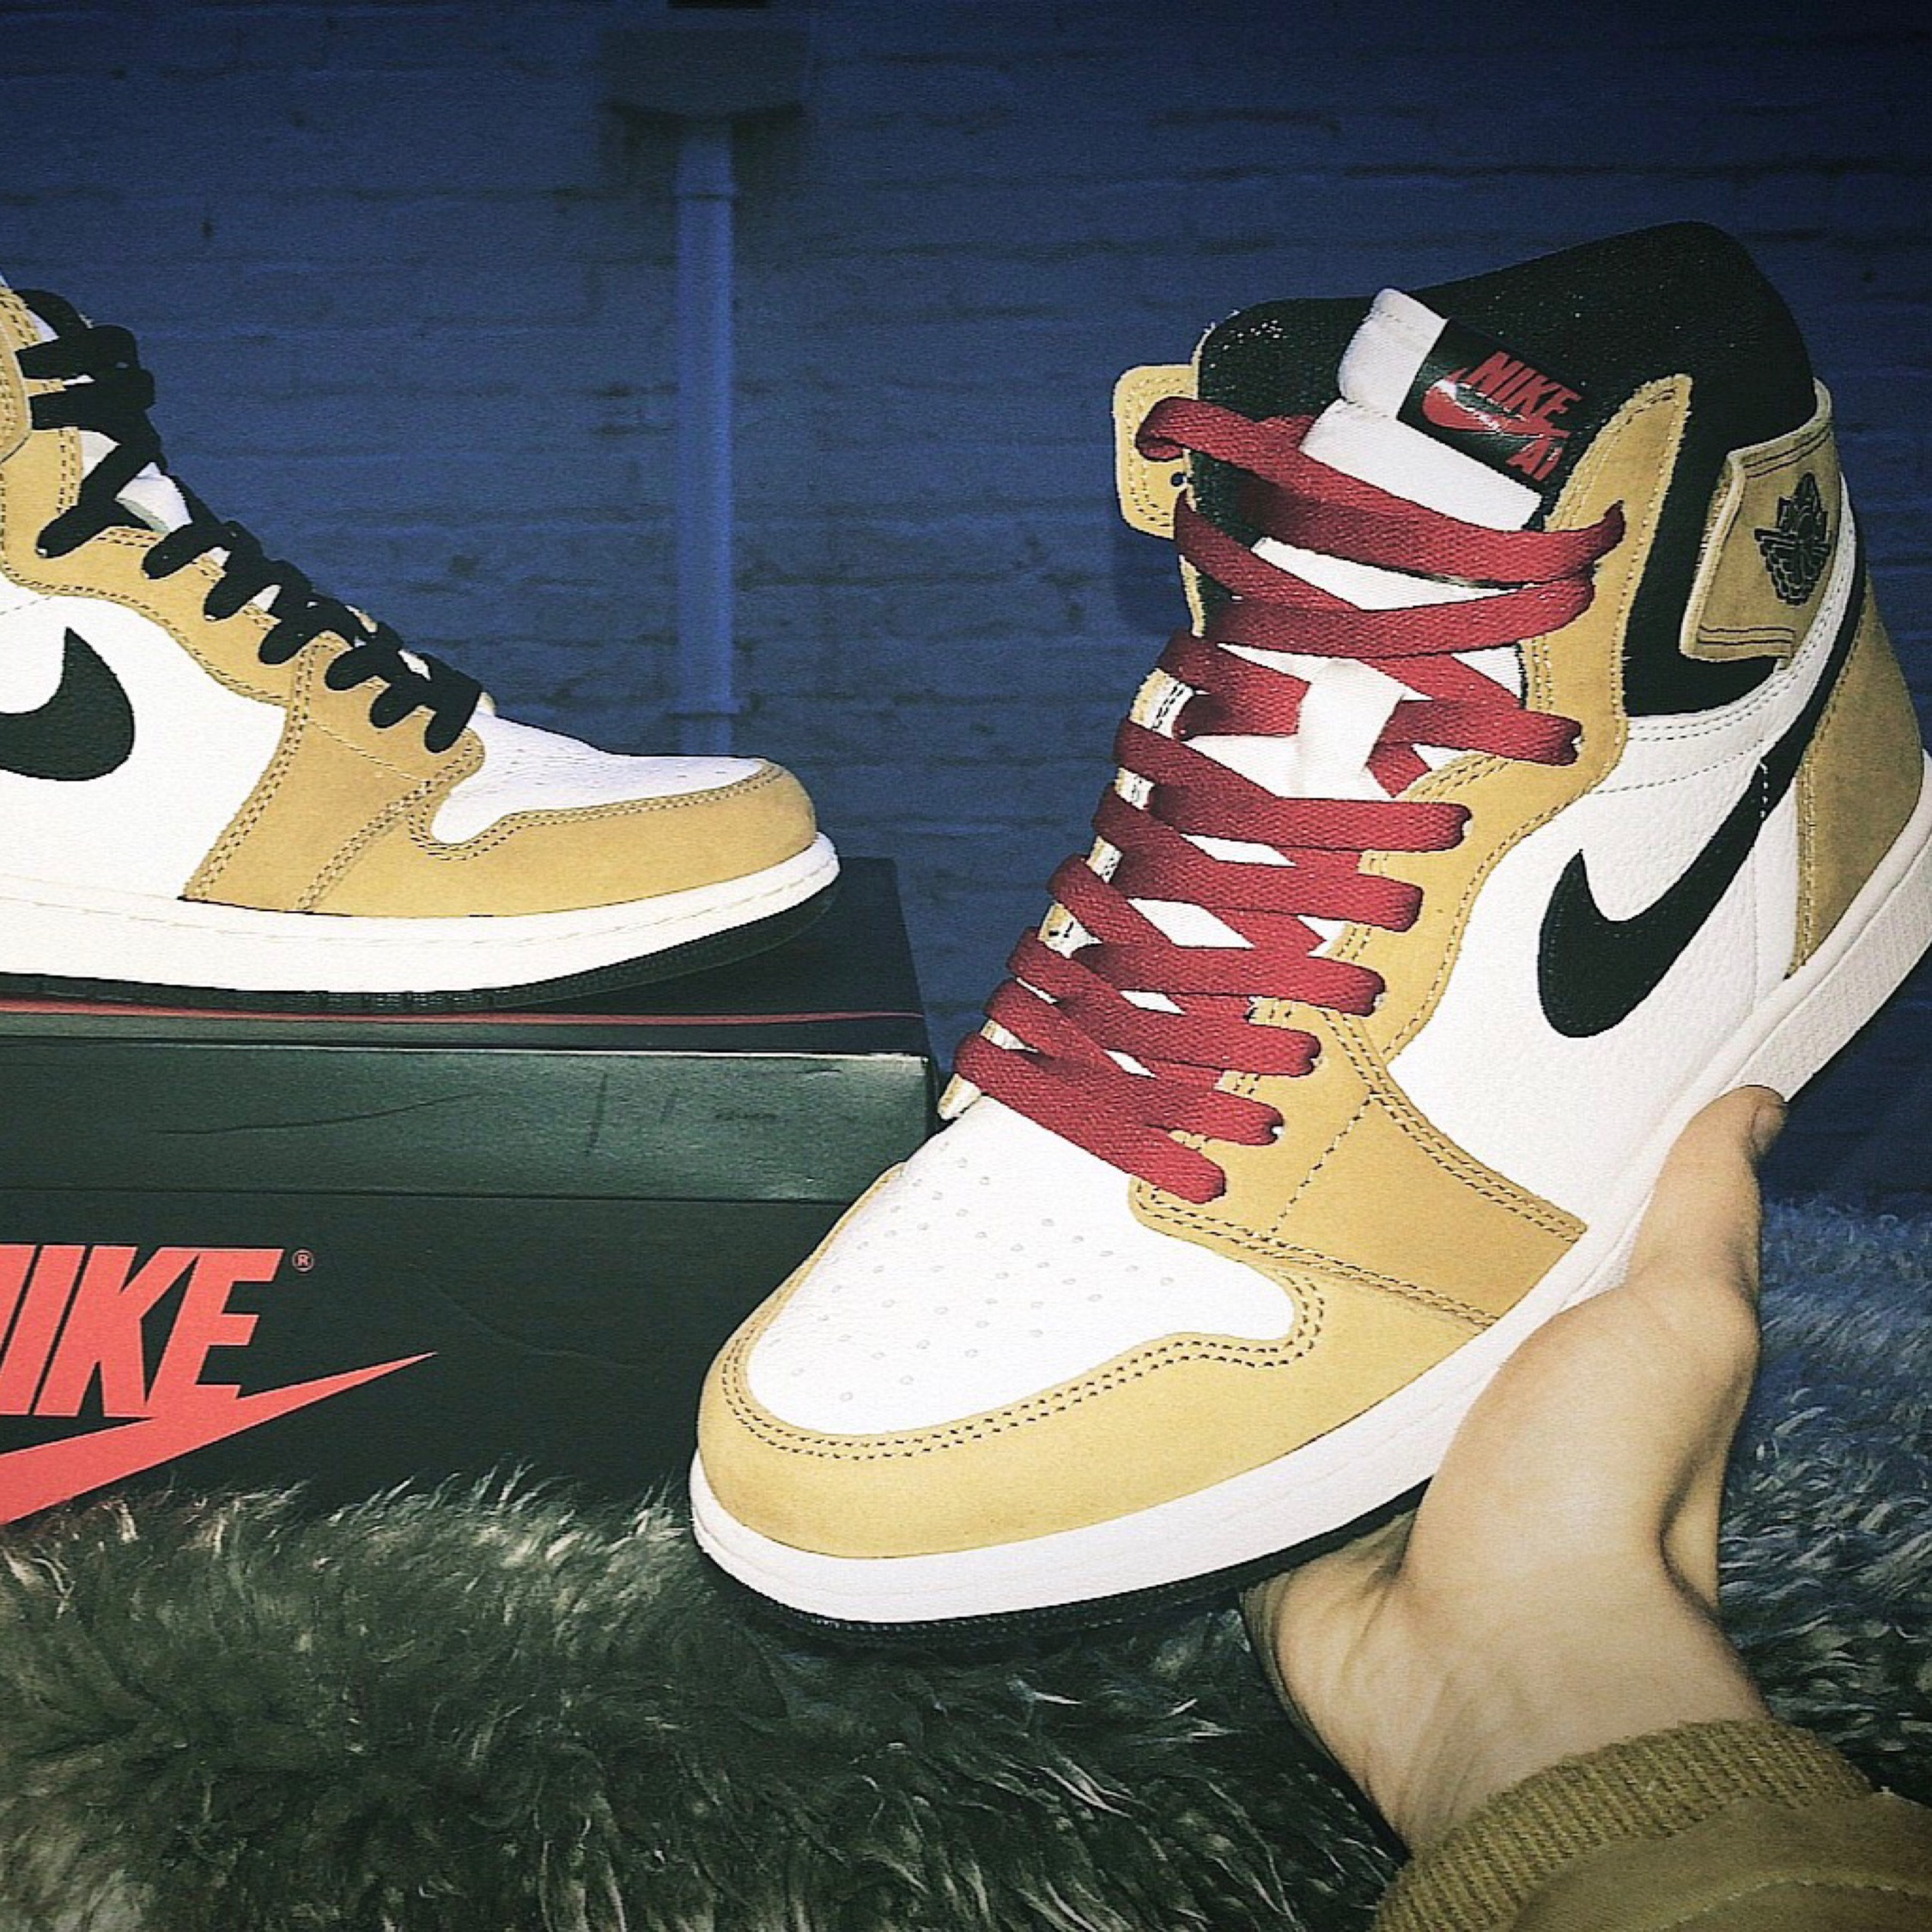 rookie of the year af1 off 55% - www